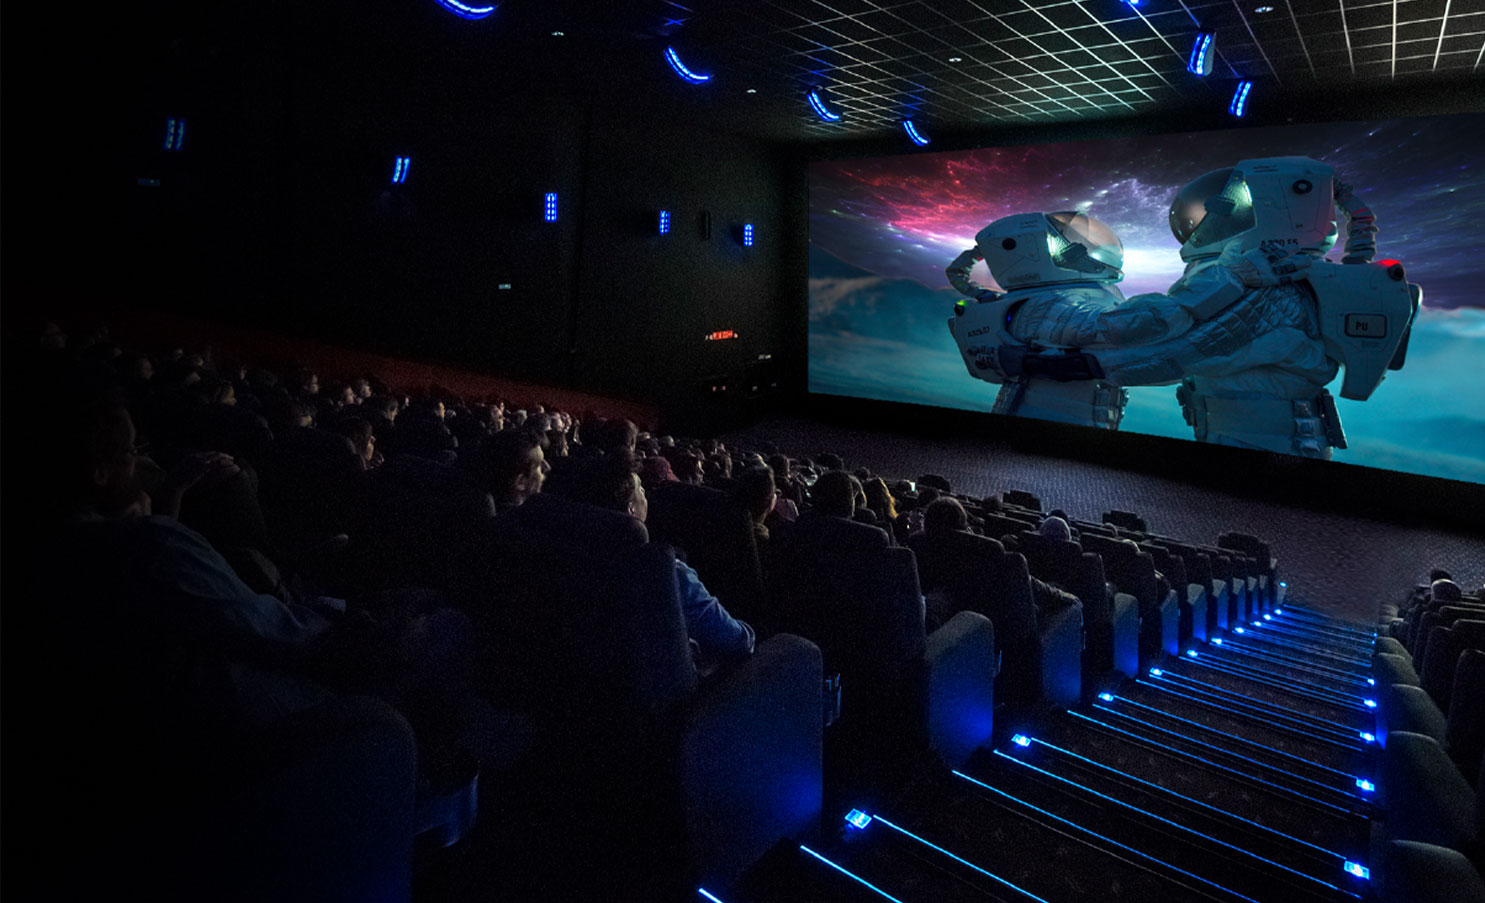 PLF cinema solutions designed for your theater